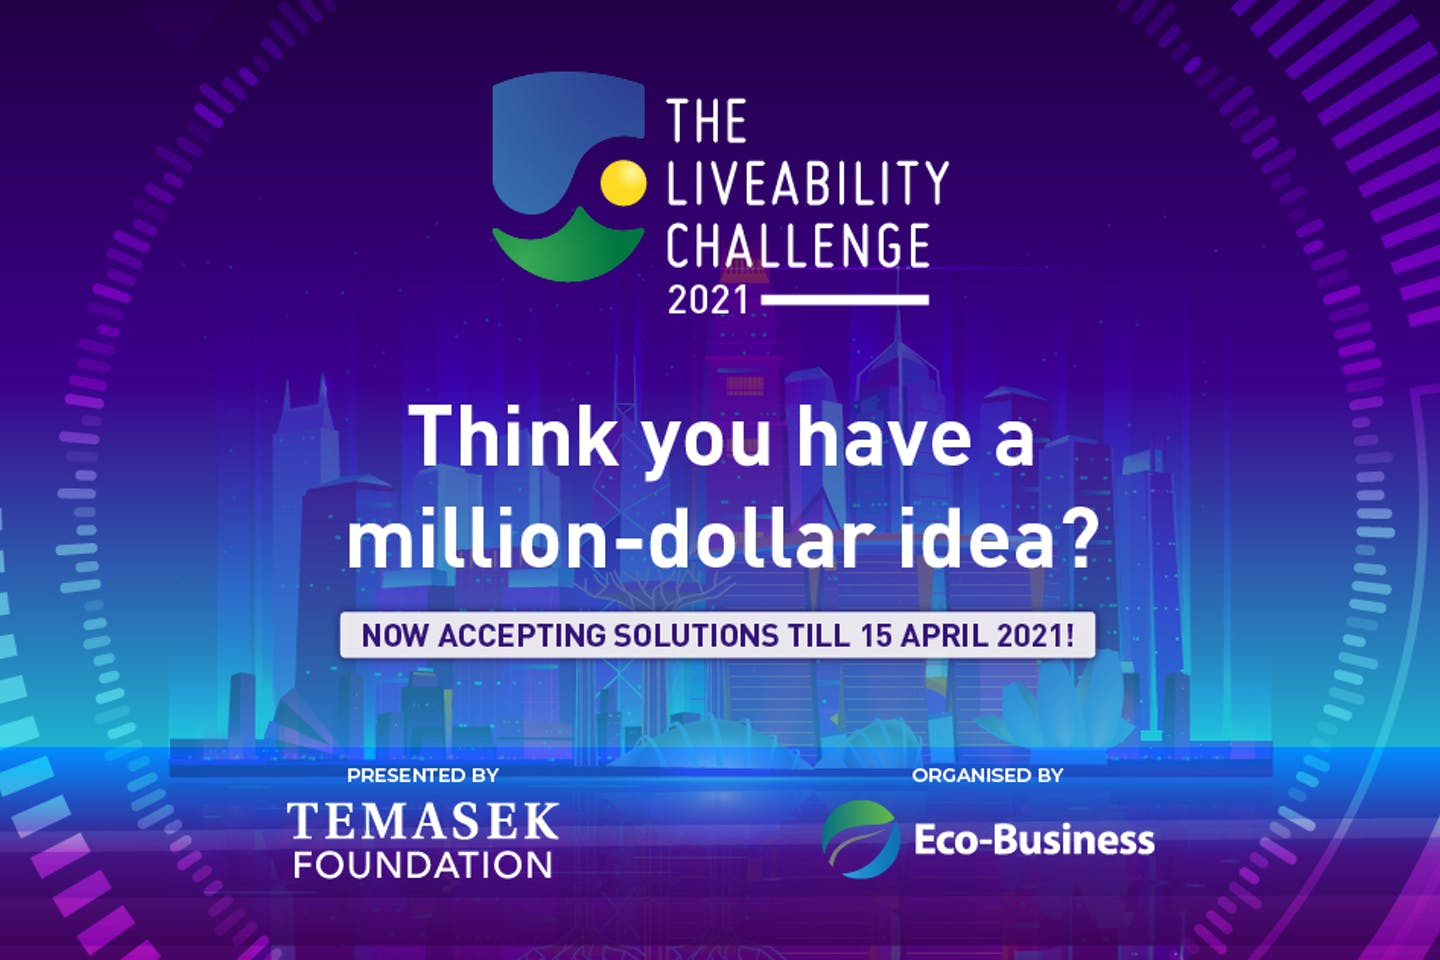 [Deadline Extended] The Liveability Challenge 2021 Submissions